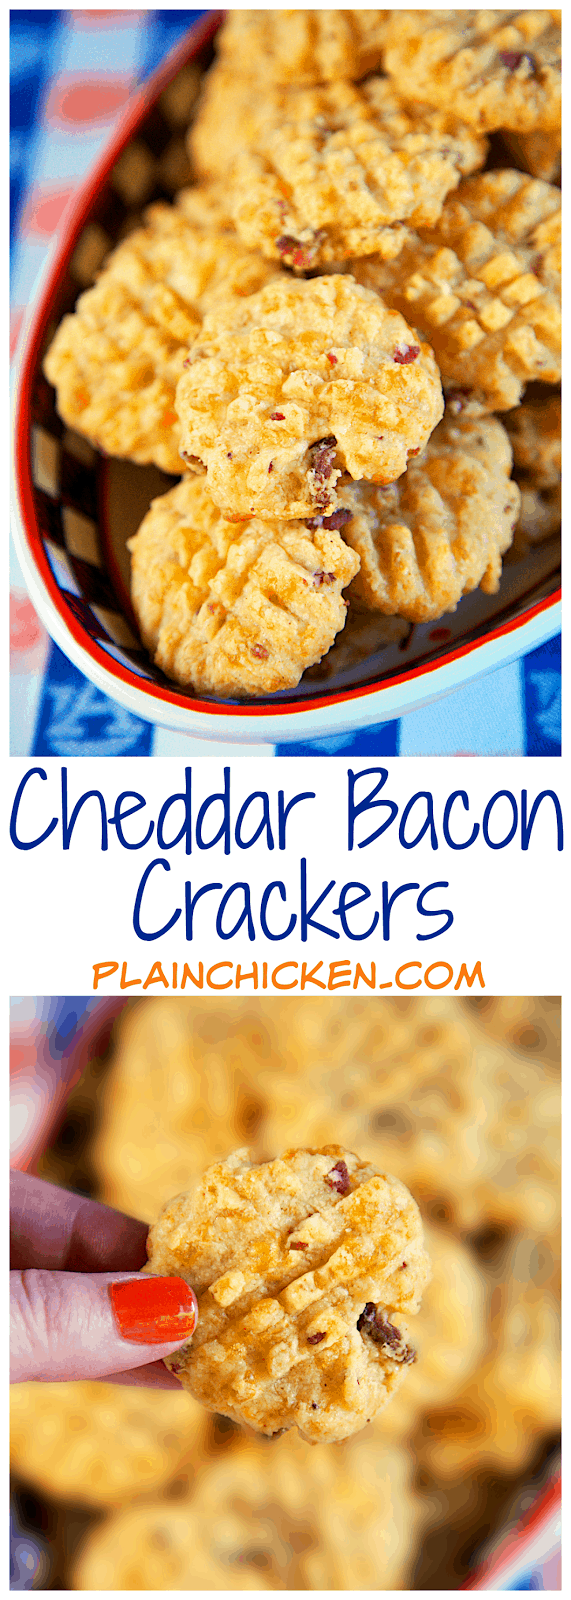 Cheddar Bacon Crackers - quick homemade bacon and cheddar cheese crackers. Use your food processor and the dough is ready in a minute! The recipe makes about 4 1/2 dozen - perfect for a party! They are always the first thing to go!